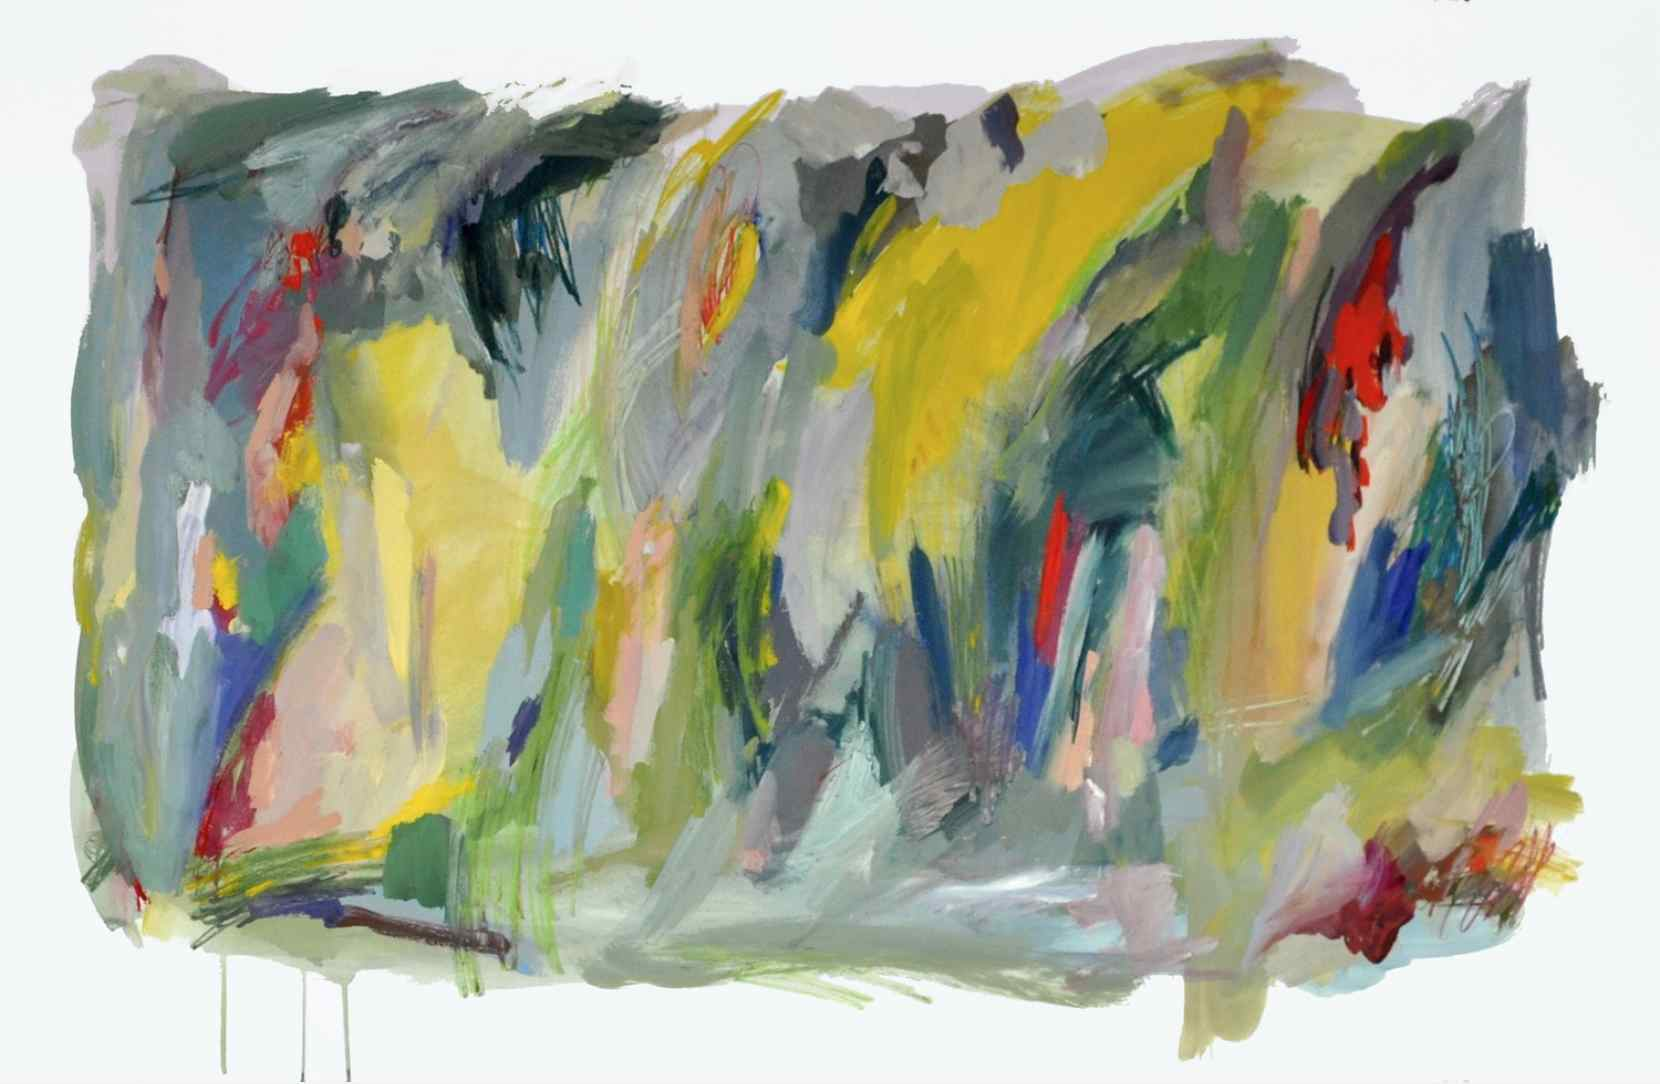 Fall , 2013 gouache, acrylic and crayons on paper 75 x 105 cm